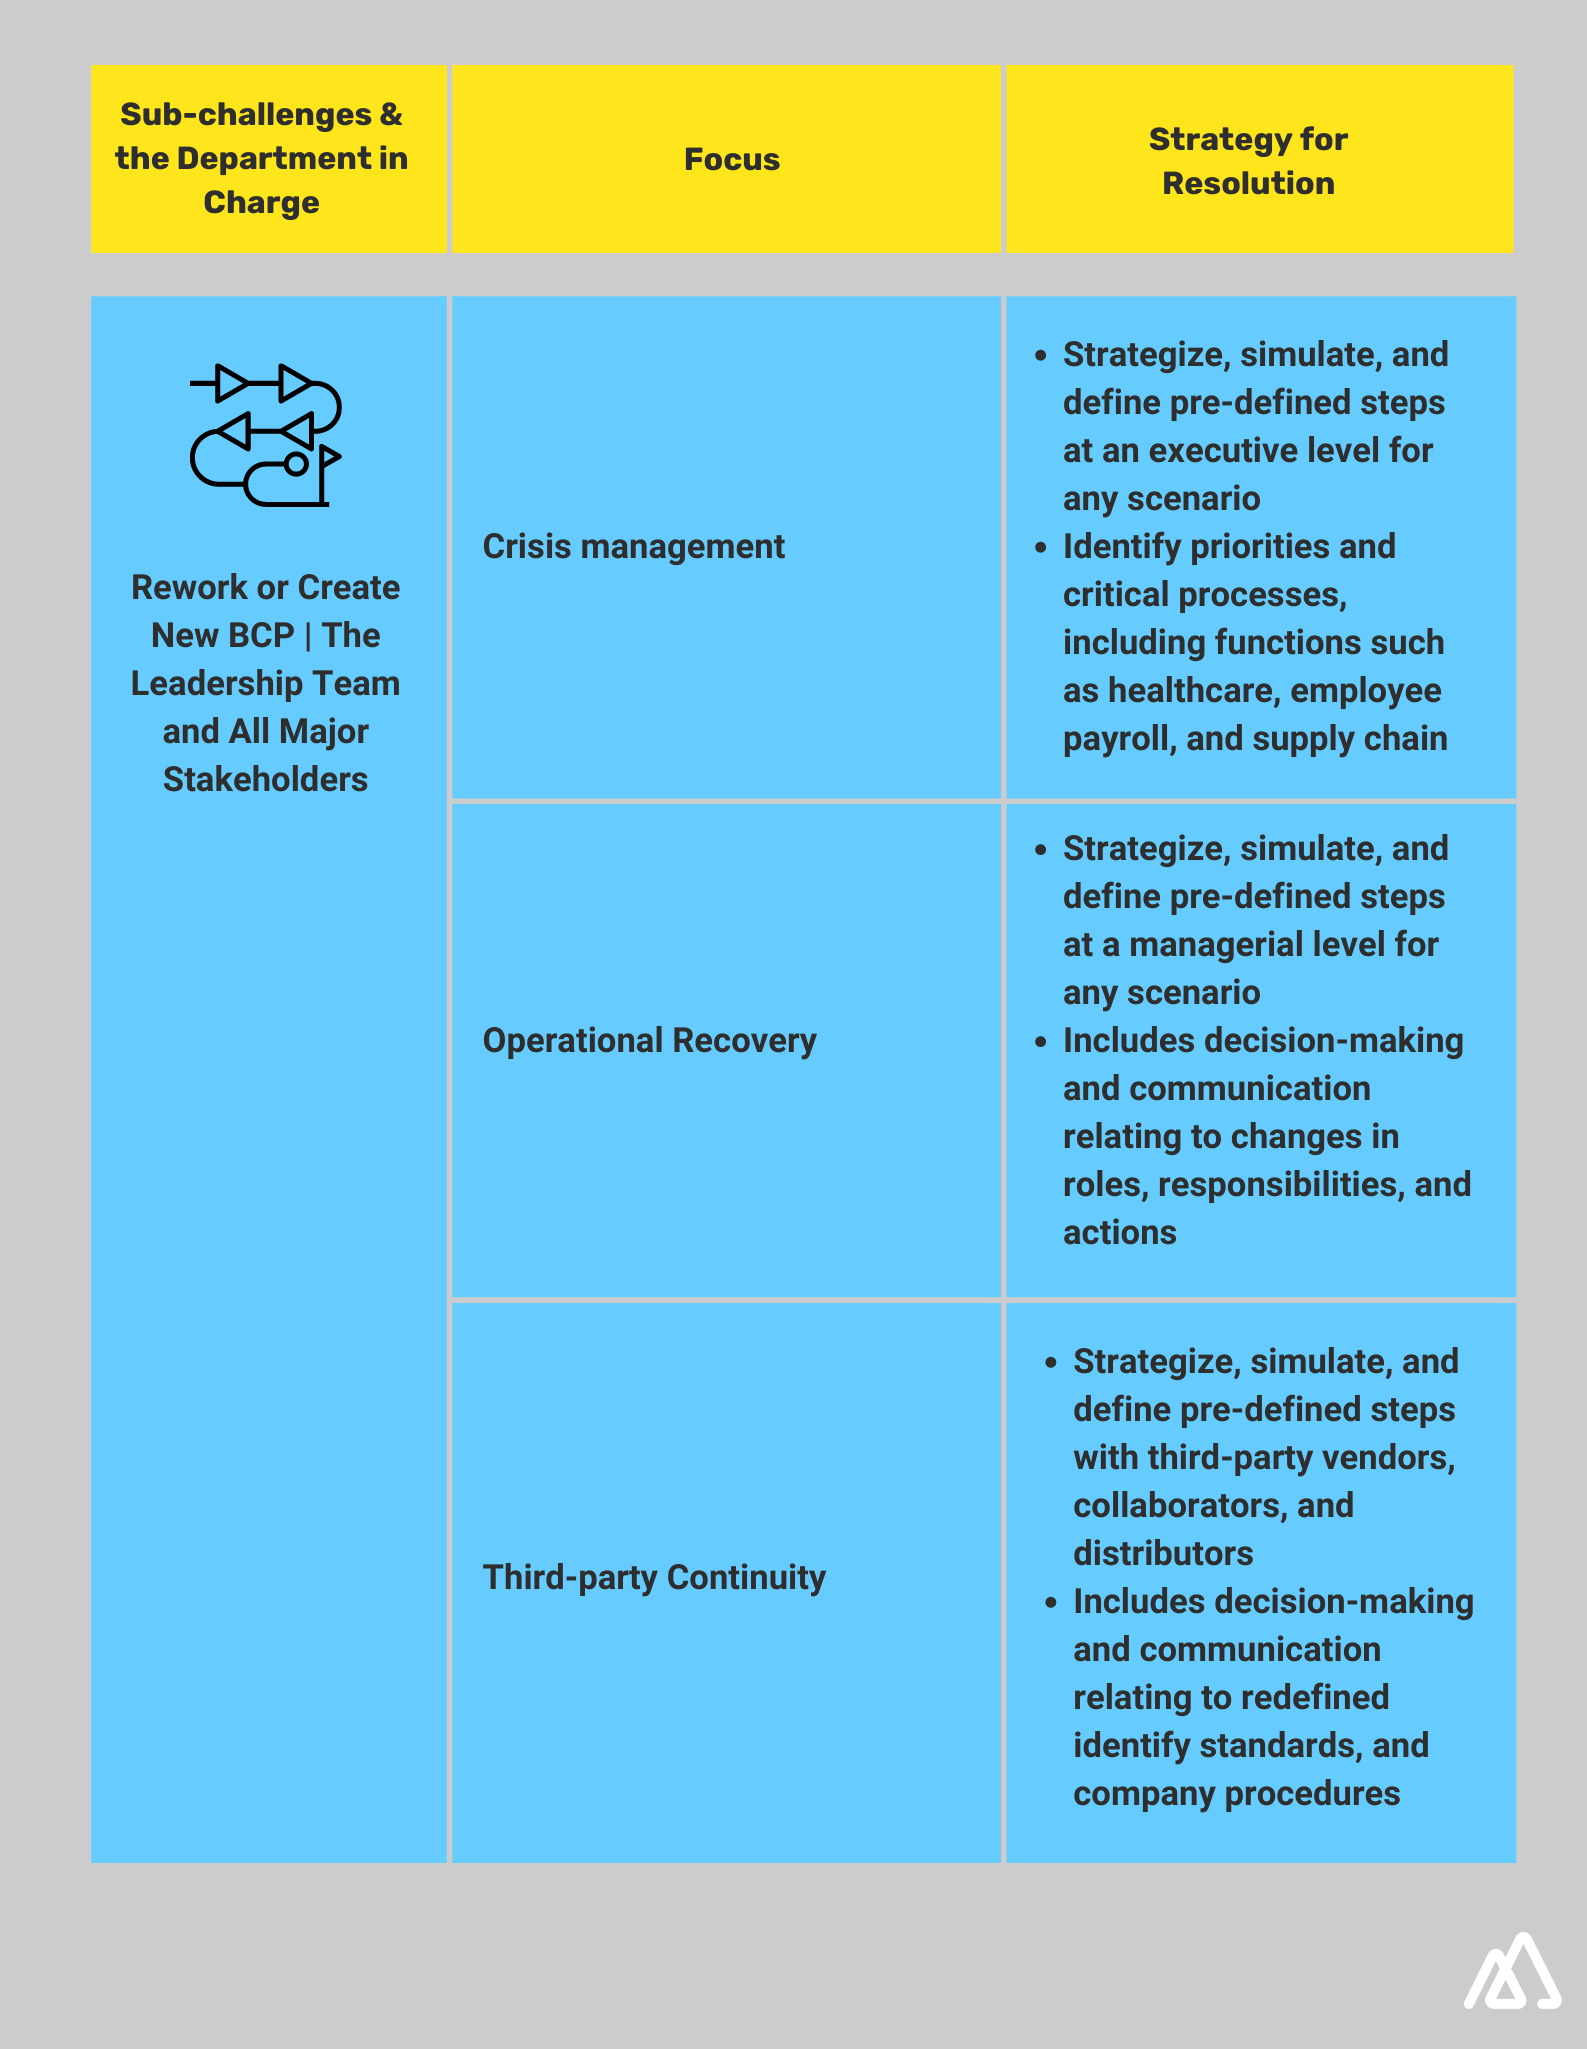 Infographic explaining sub challenges and department in charge for Business Continuity